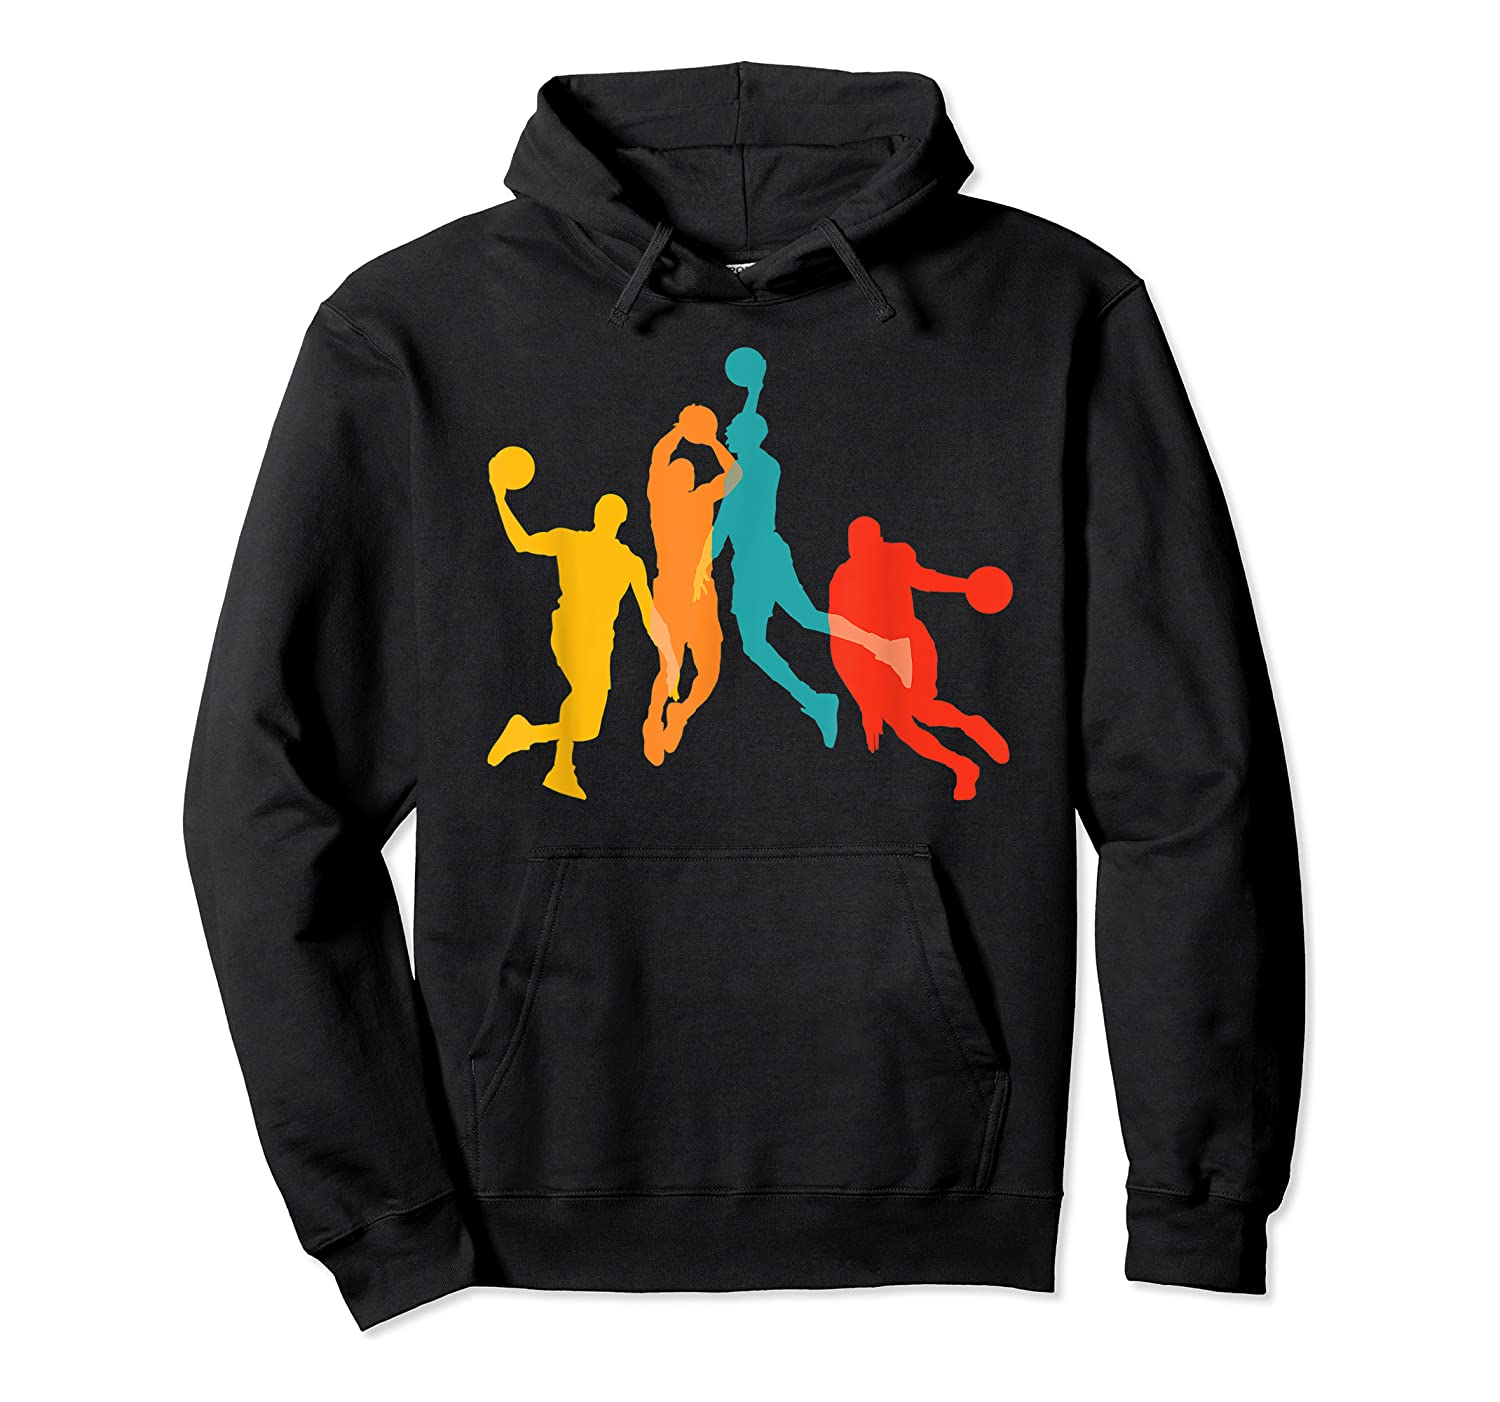 Basketball Vintage Bball Basketball Player Dunk Sport Gift Shirts Unisex Pullover Hoodie